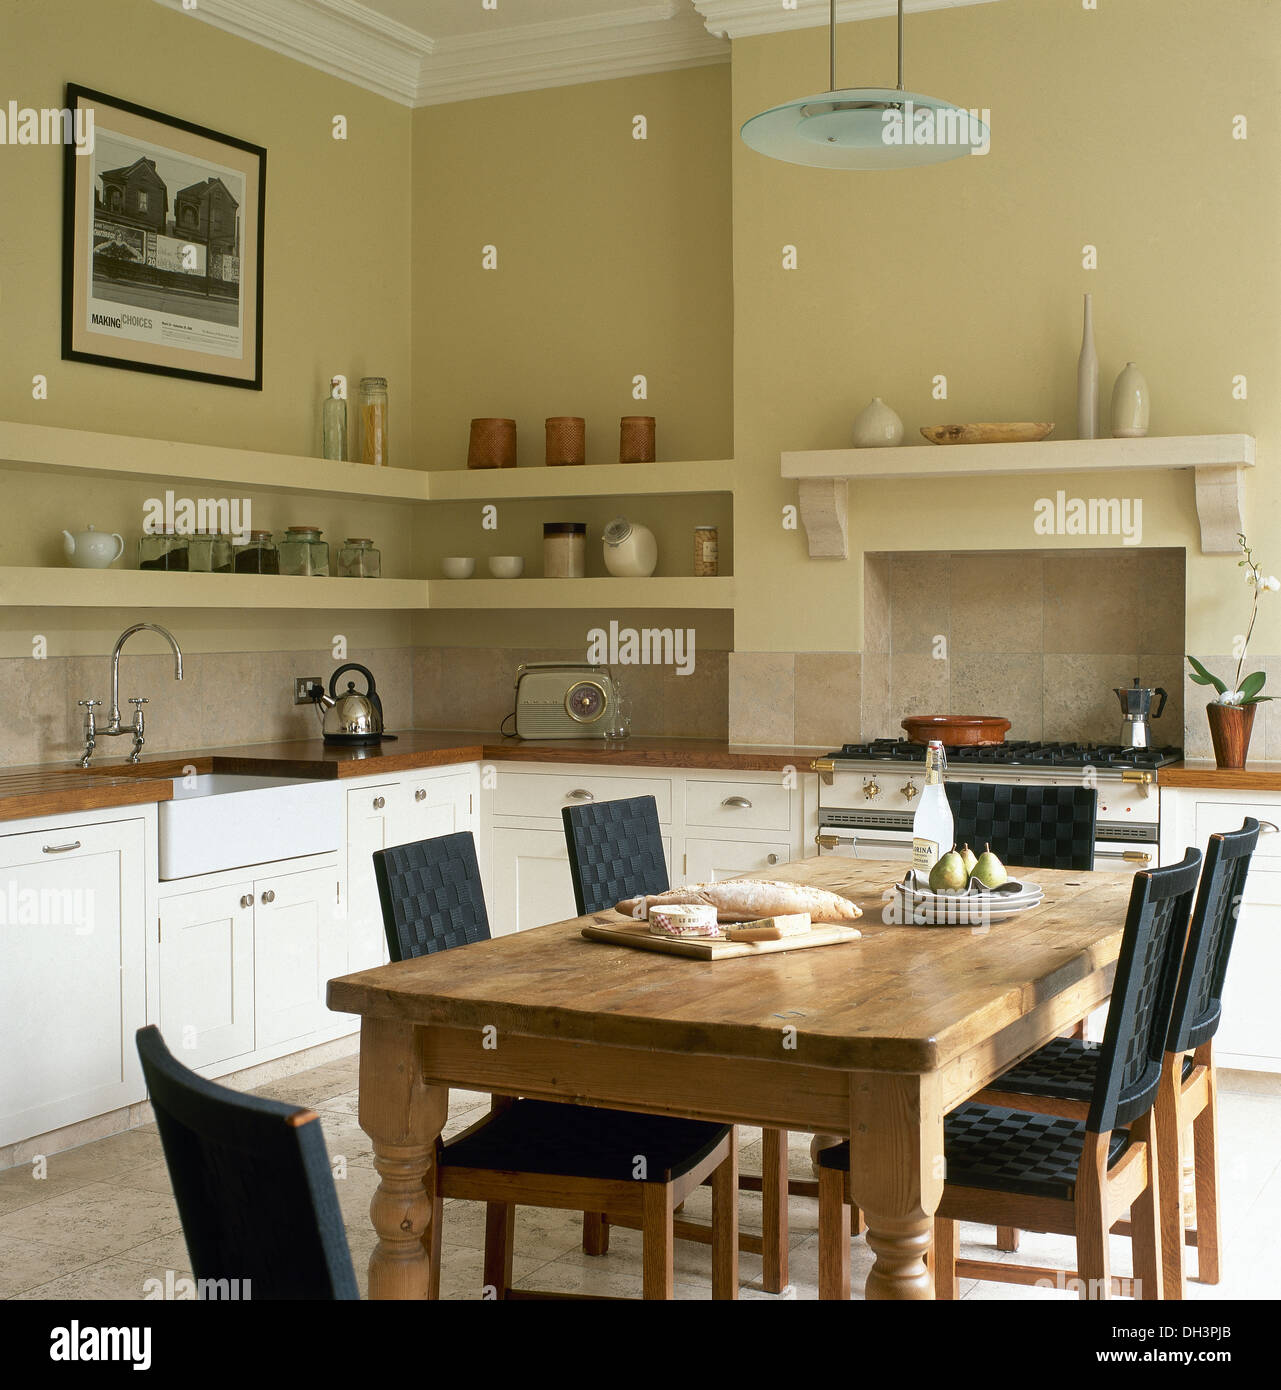 Pine Table And Chairs With Black Seats And Backs In Cream